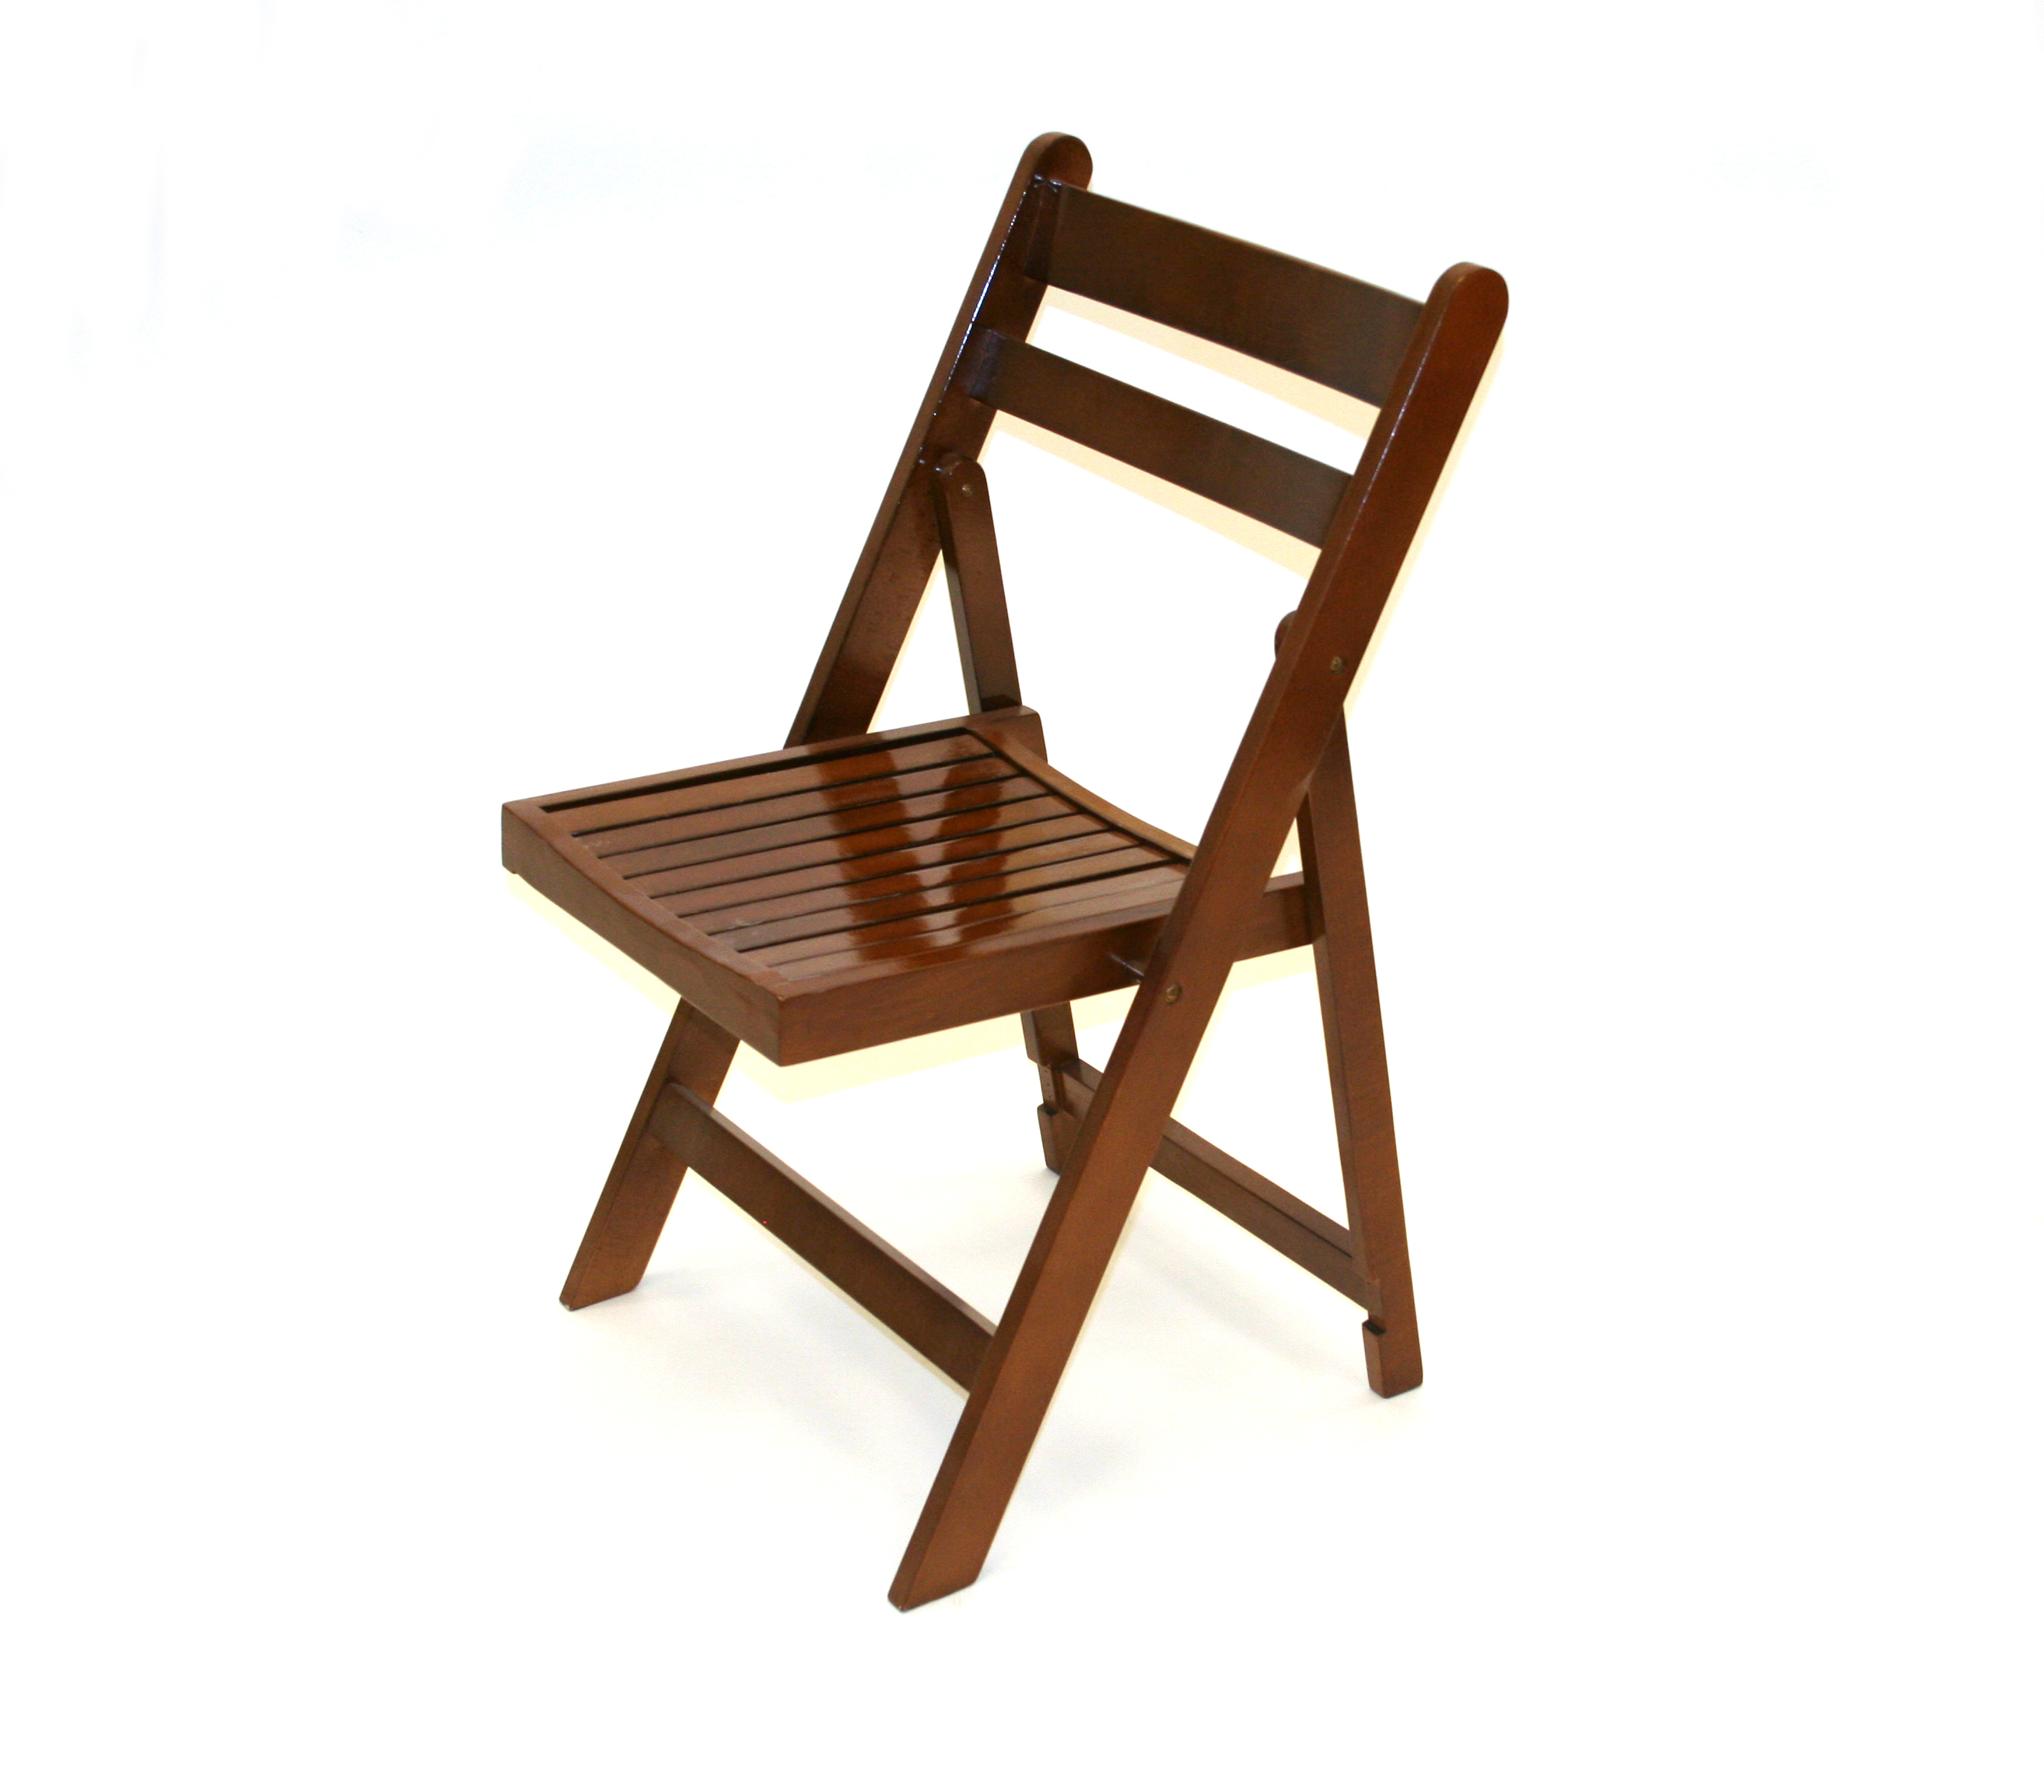 foldable chairs picnic time sports chair brown wooden folding hire events weddings be